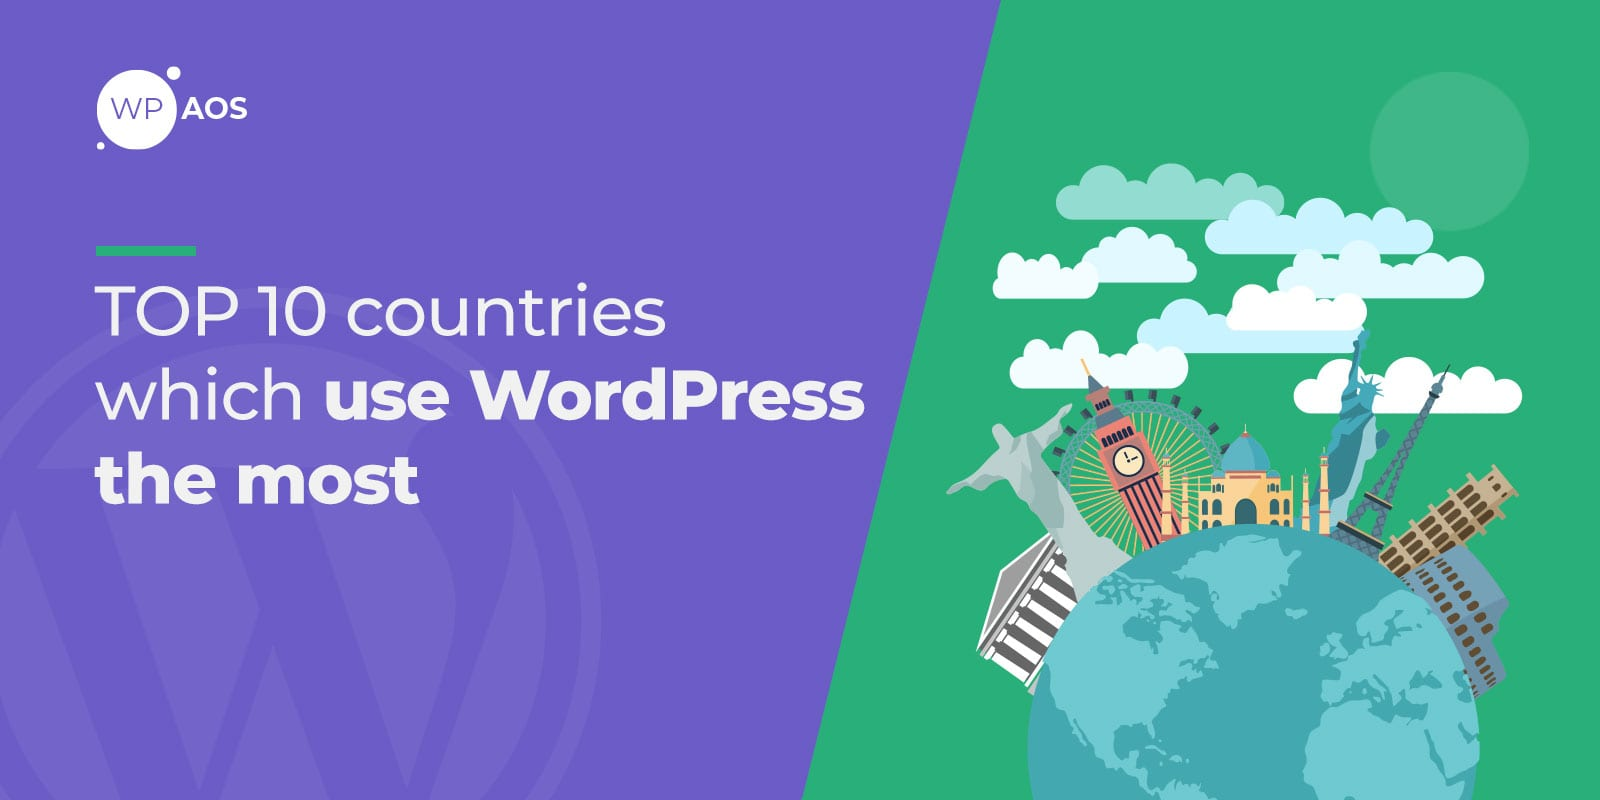 TOP Countries use WordPress in 2020, wpaos